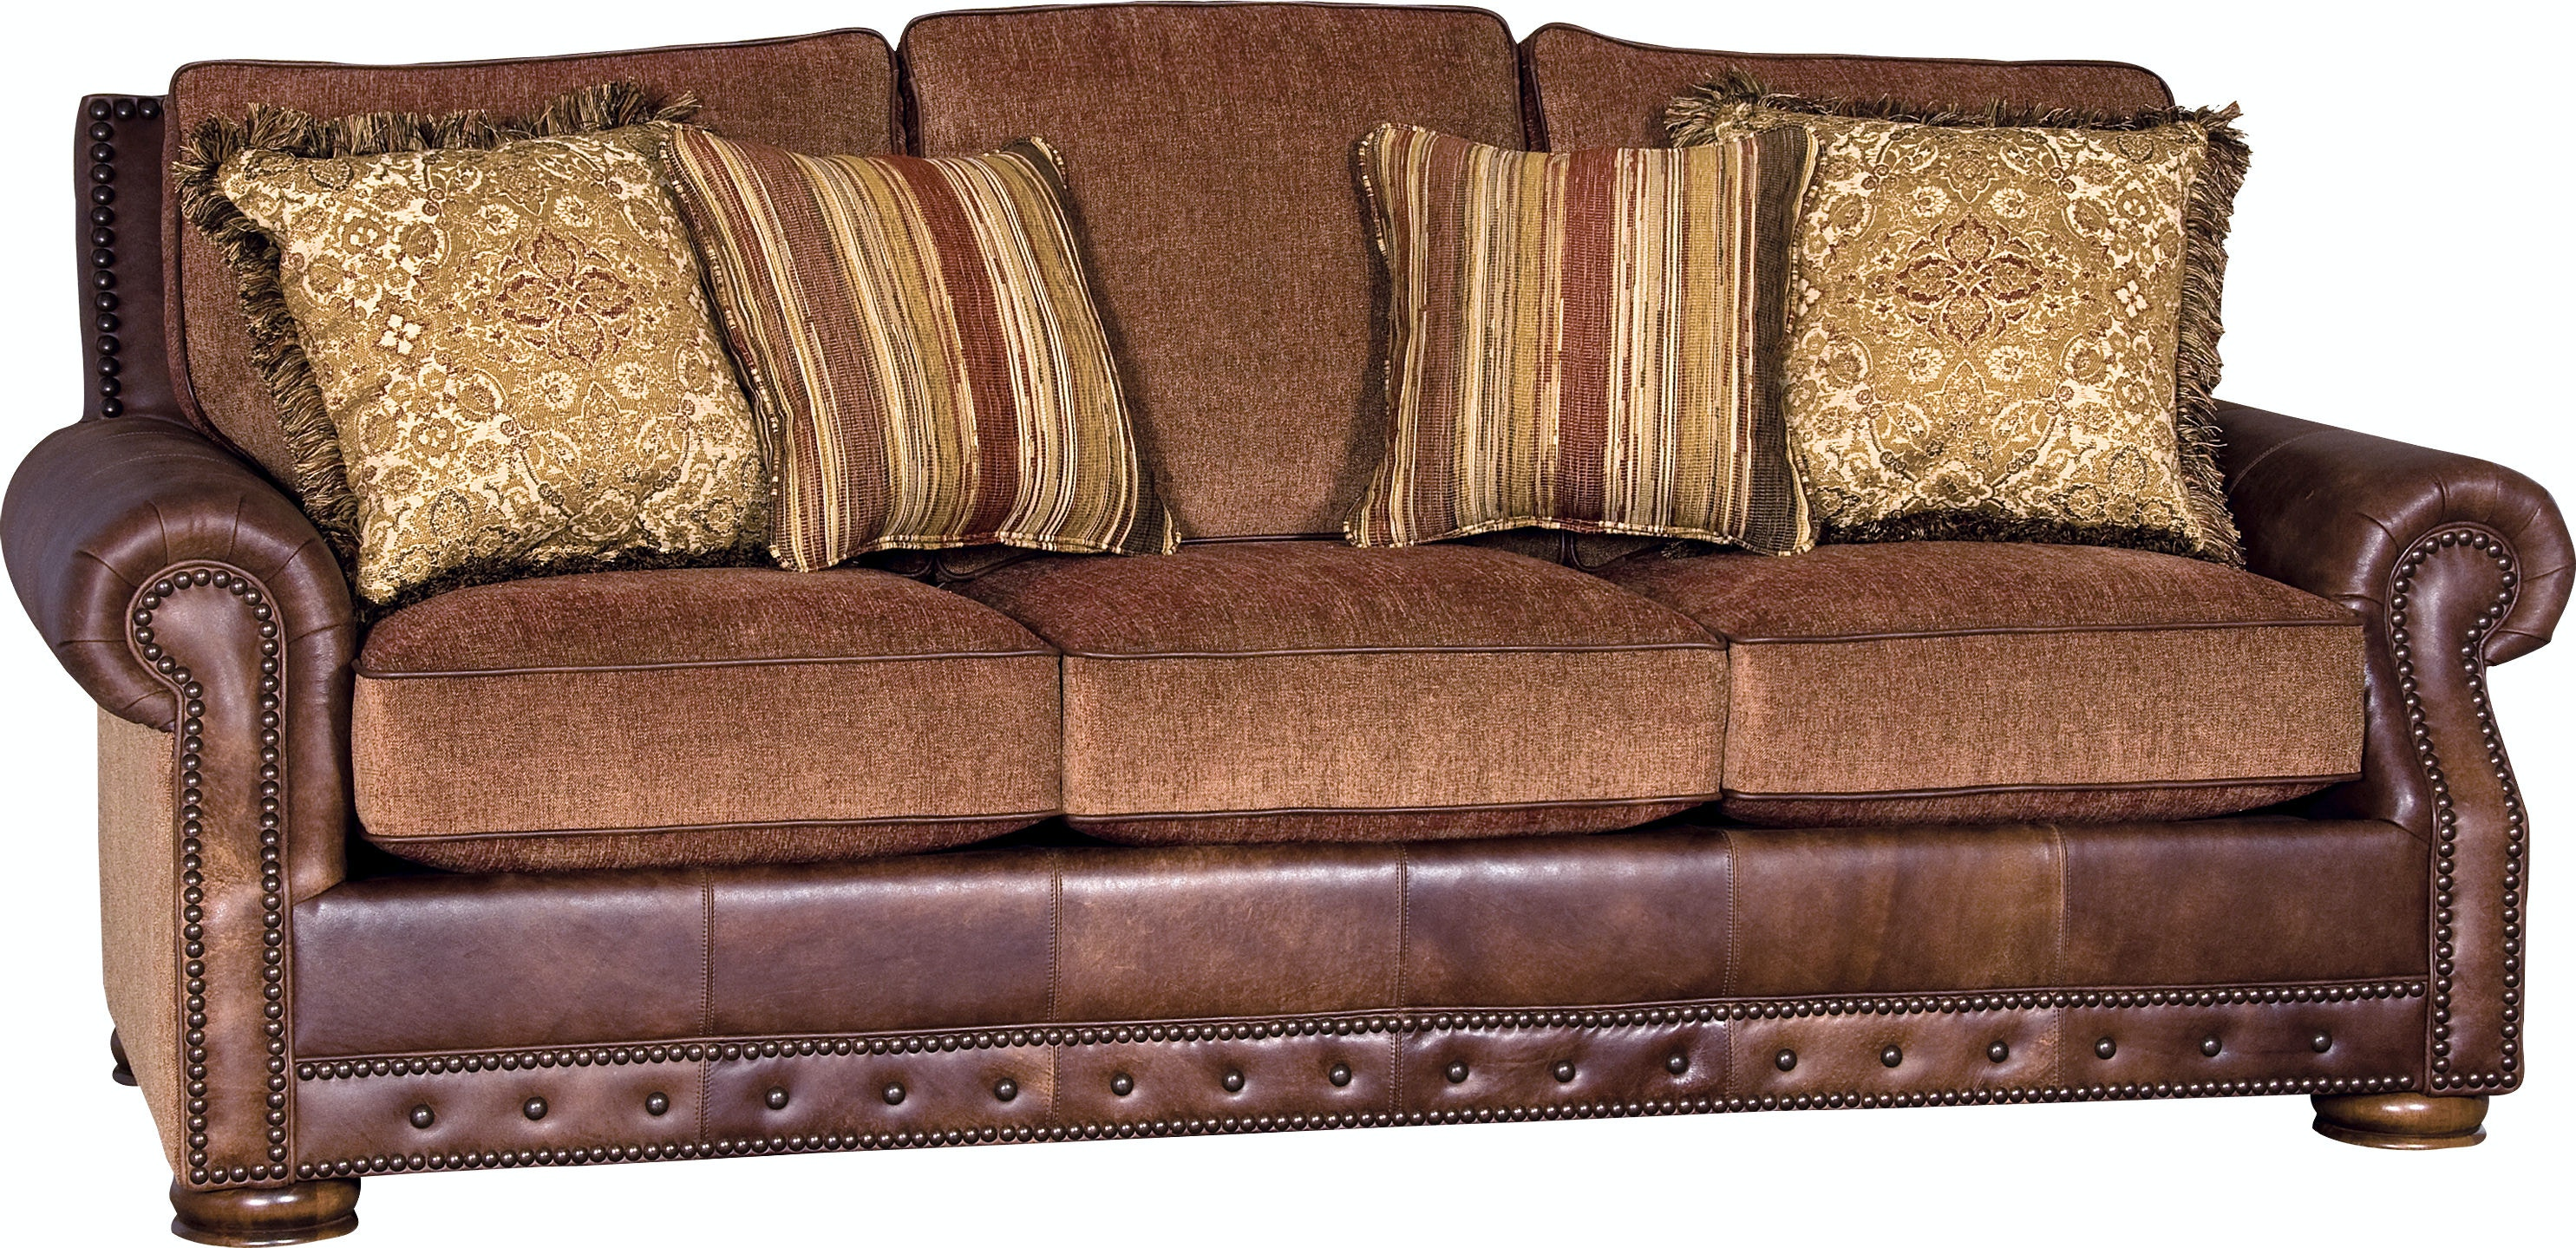 Living Room Sofas Stacy Furniture Grapevine Allen And Plano Texas